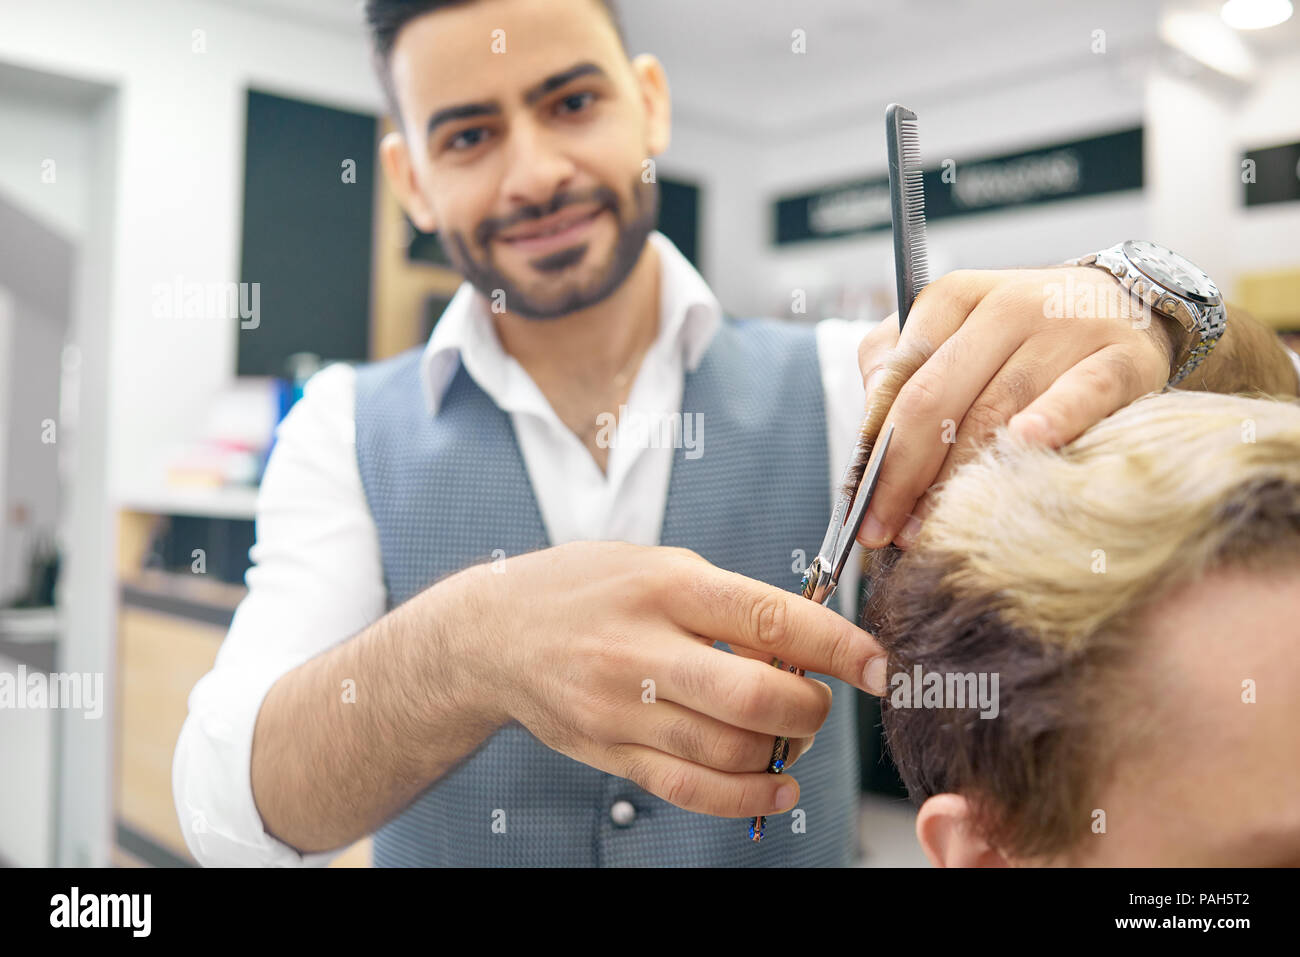 Doing new hairstyle for male model using sharp metallic scissors. Hairdresser wearing classic white shirt, grey waistcoat. Smiling, looking at camera, loving his job. Male model having toned hair. - Stock Image